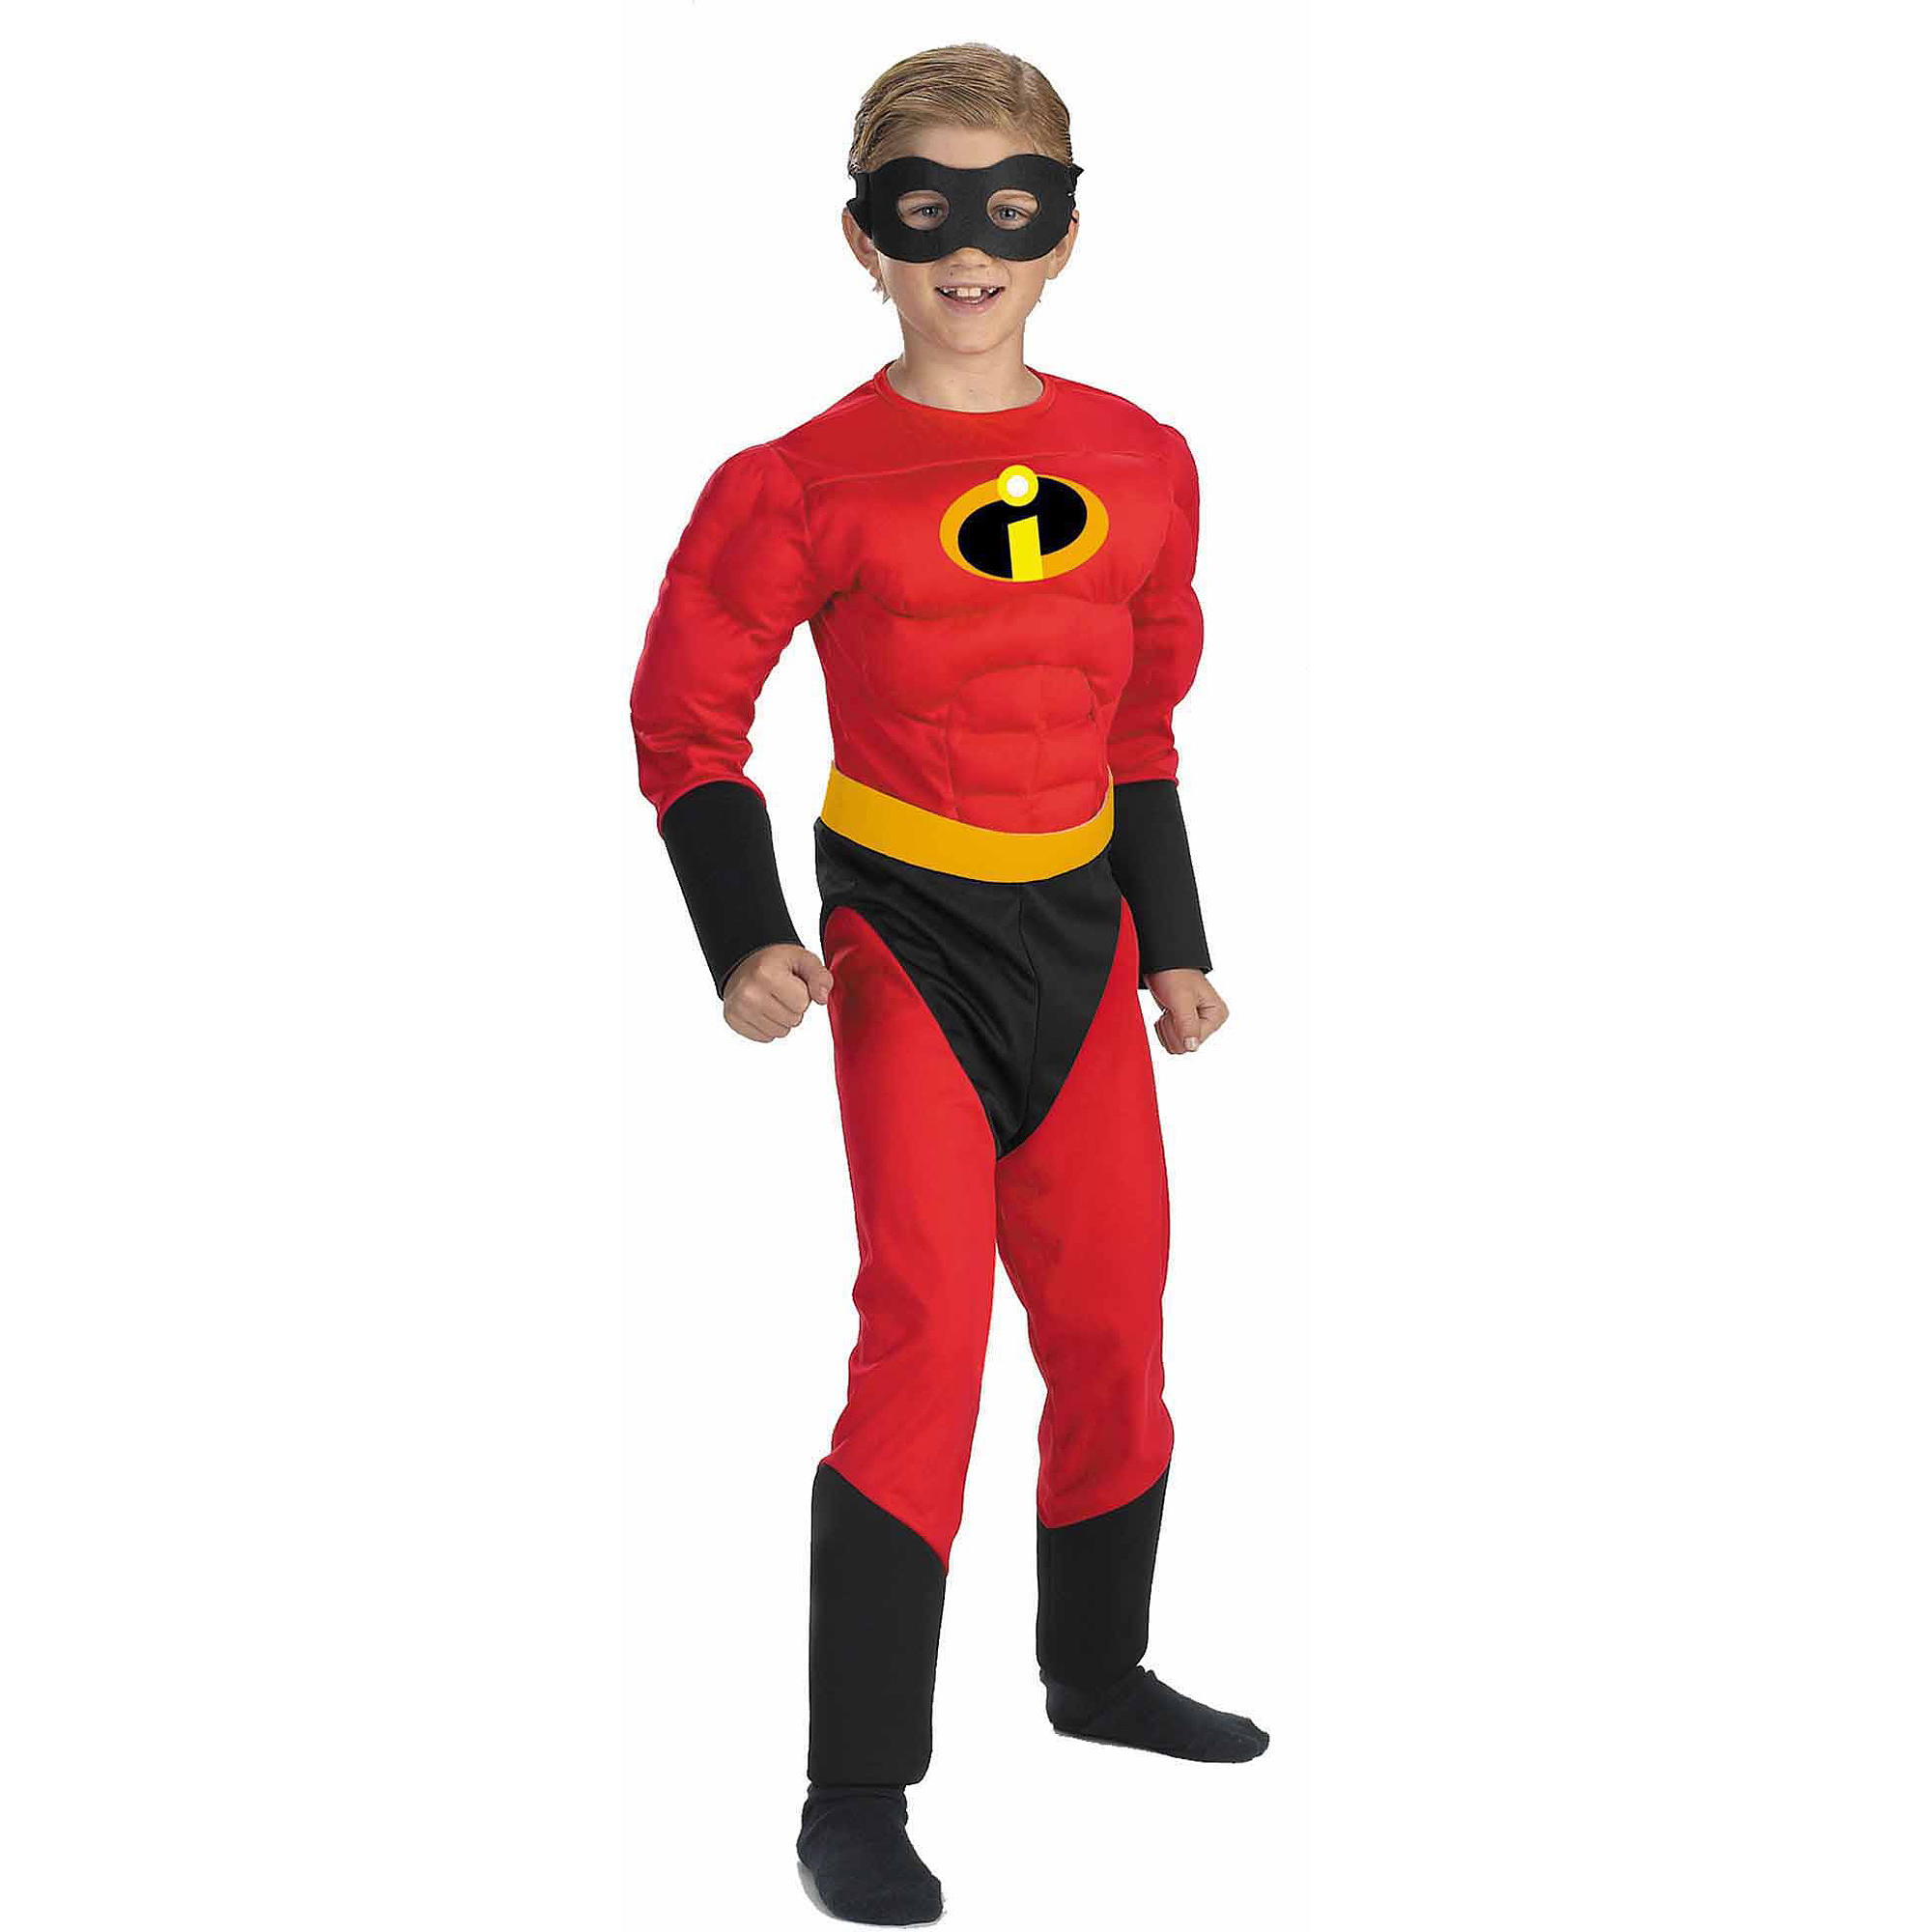 sc 1 st  Walmart & Mr. Incredible Muscle Child Halloween Costume - Walmart.com